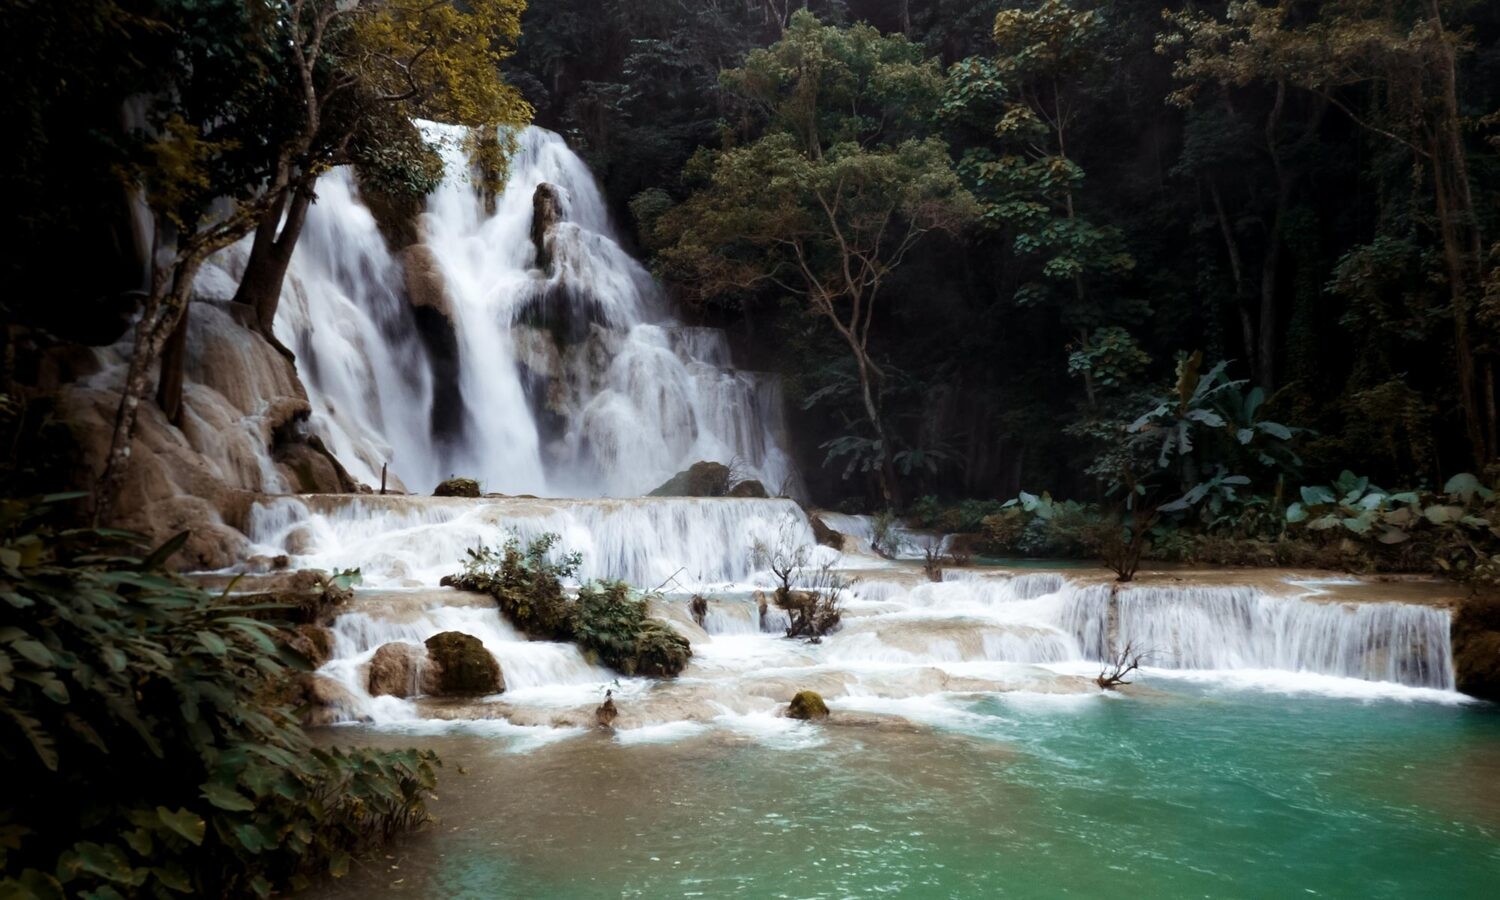 Laos packing guide for monsoon season